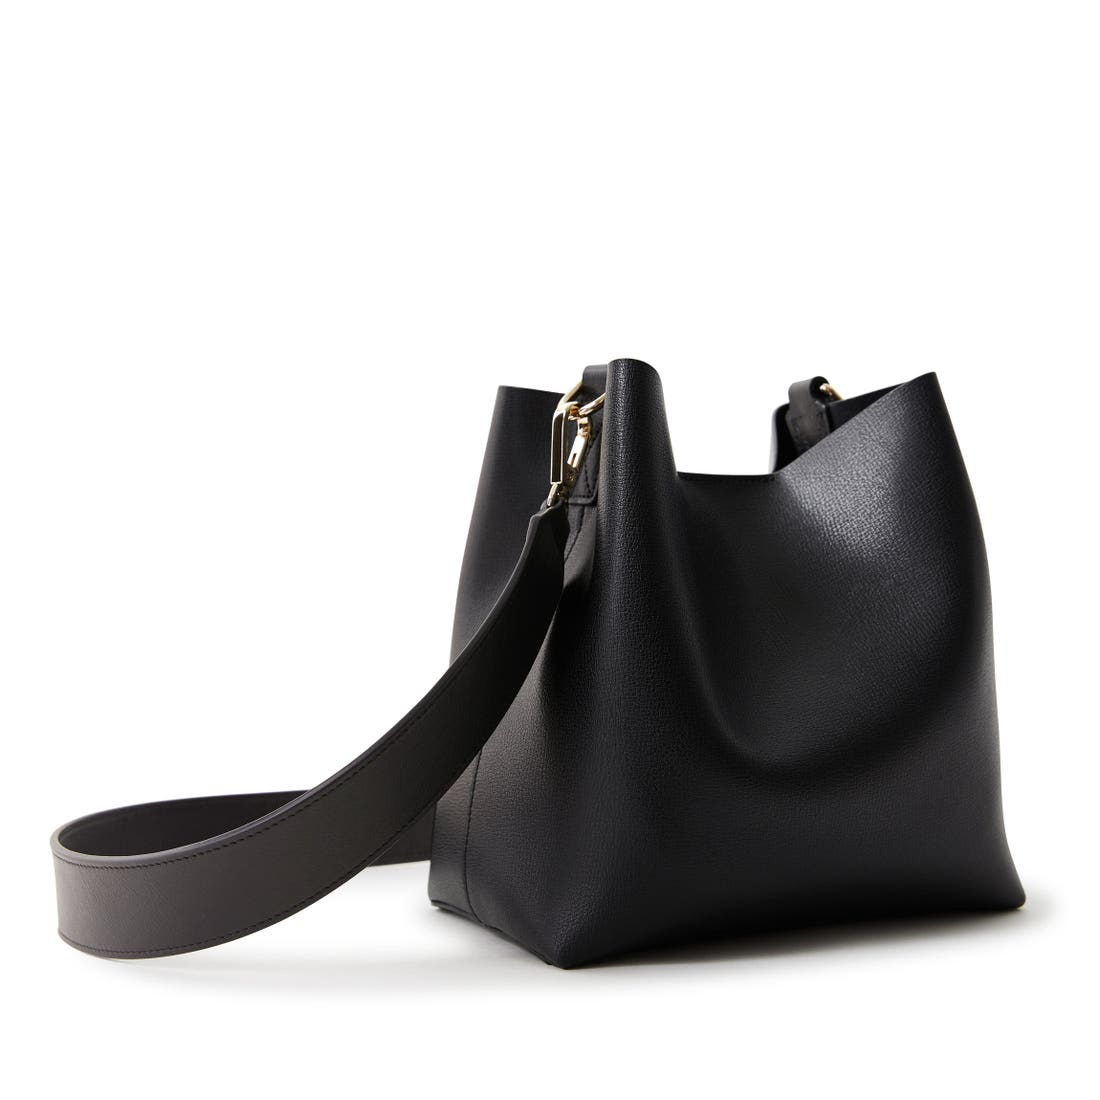 Elizabeth Small Crossbody Bucket Bag